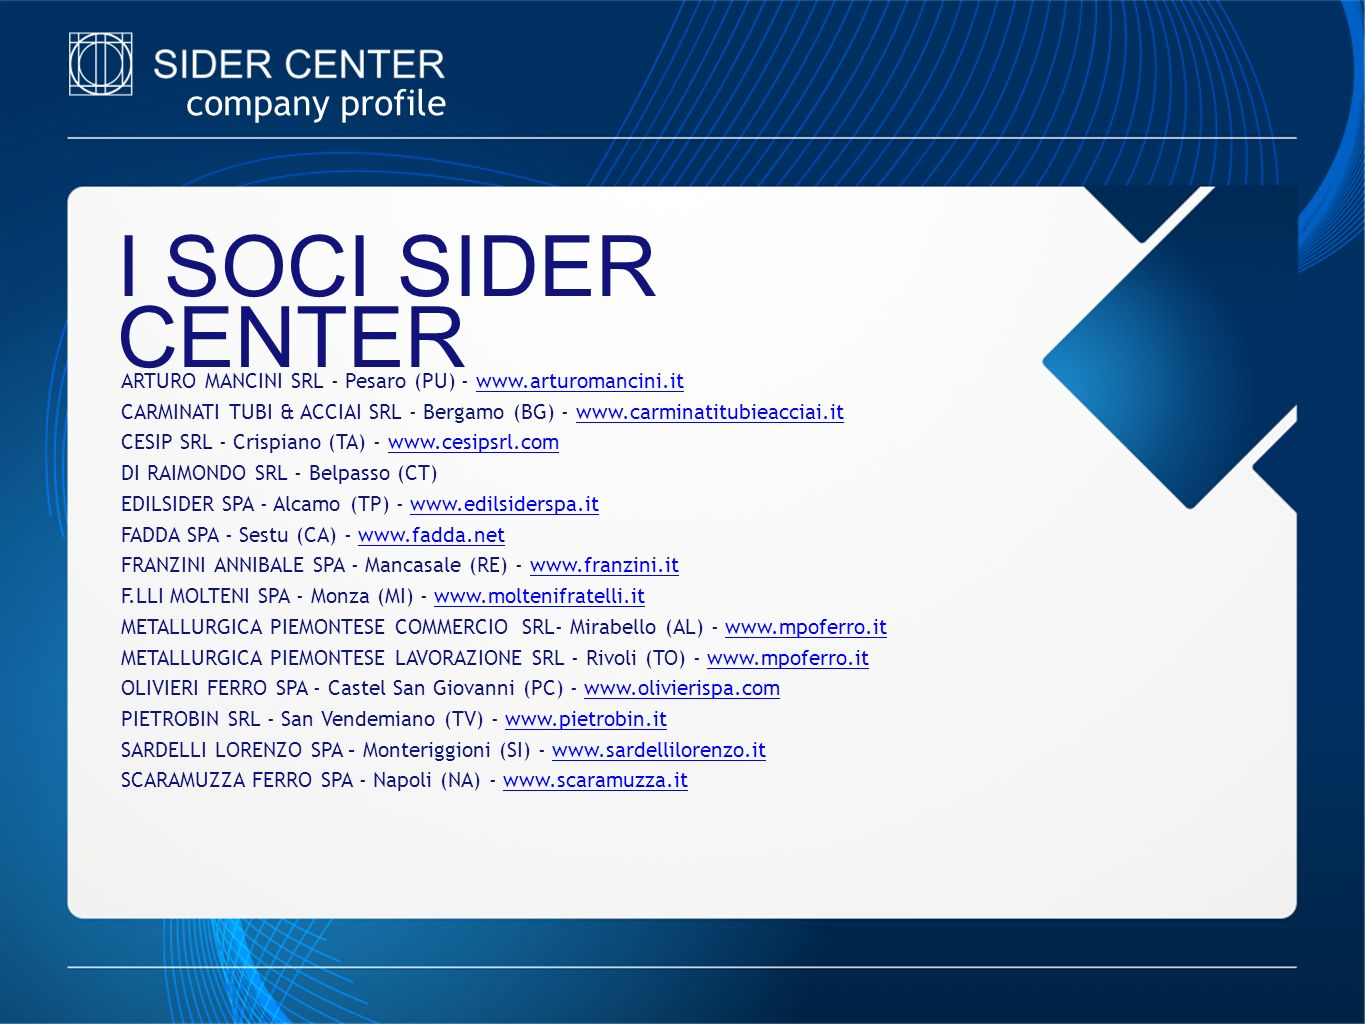 I SOCI SIDER CENTER company profile